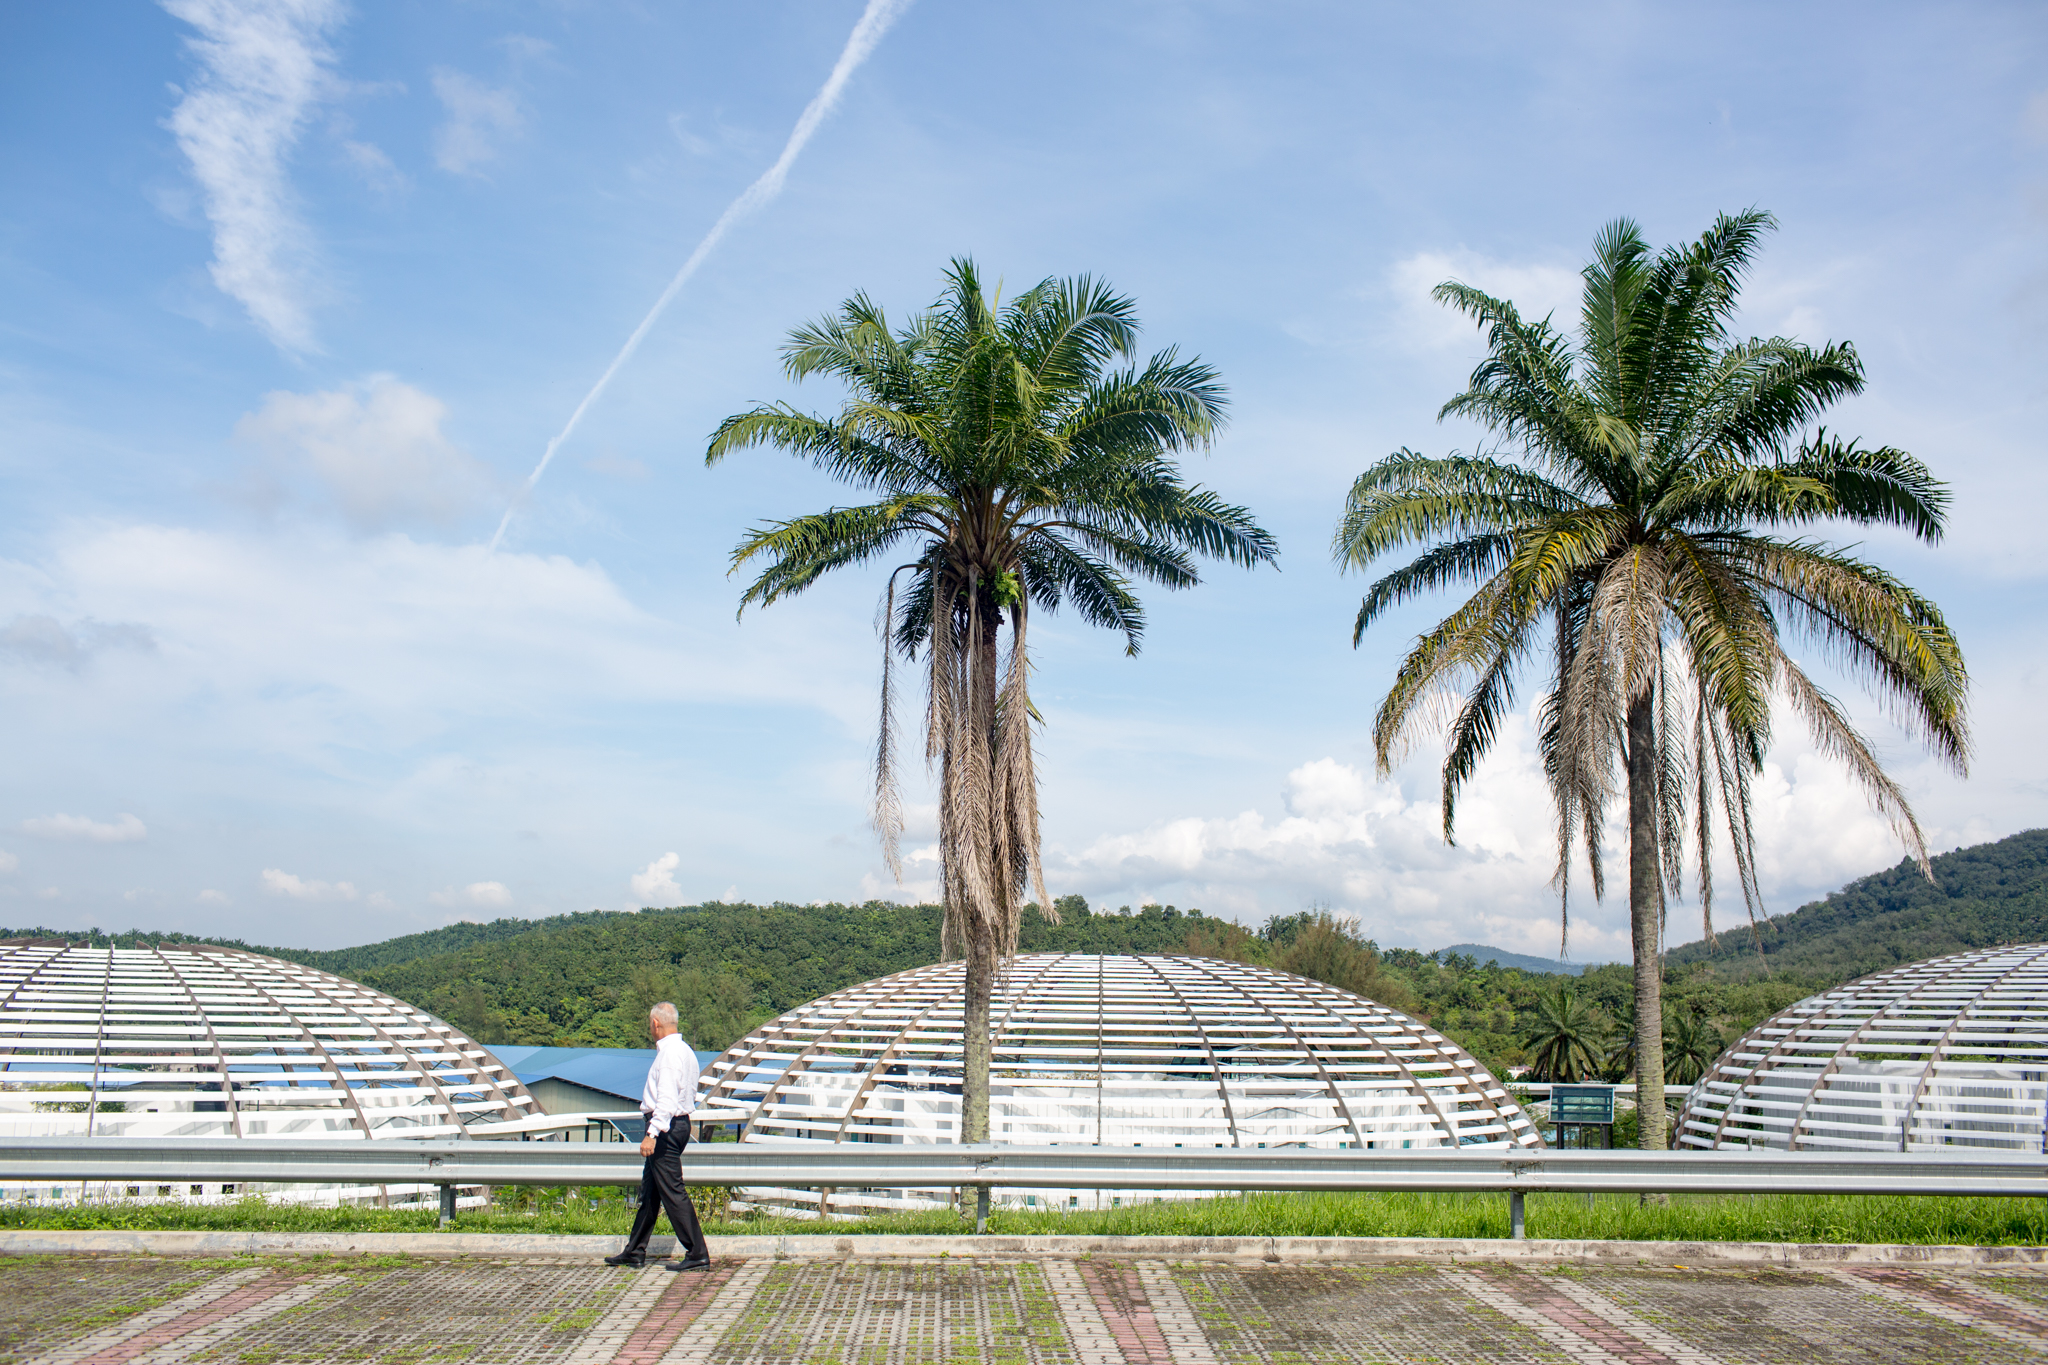 Sayed Azam-Ali, director of Crops for the Future, strolls past the domes that house the institute on the campus of the University of Nottingham in Semenyih, Malaysia.